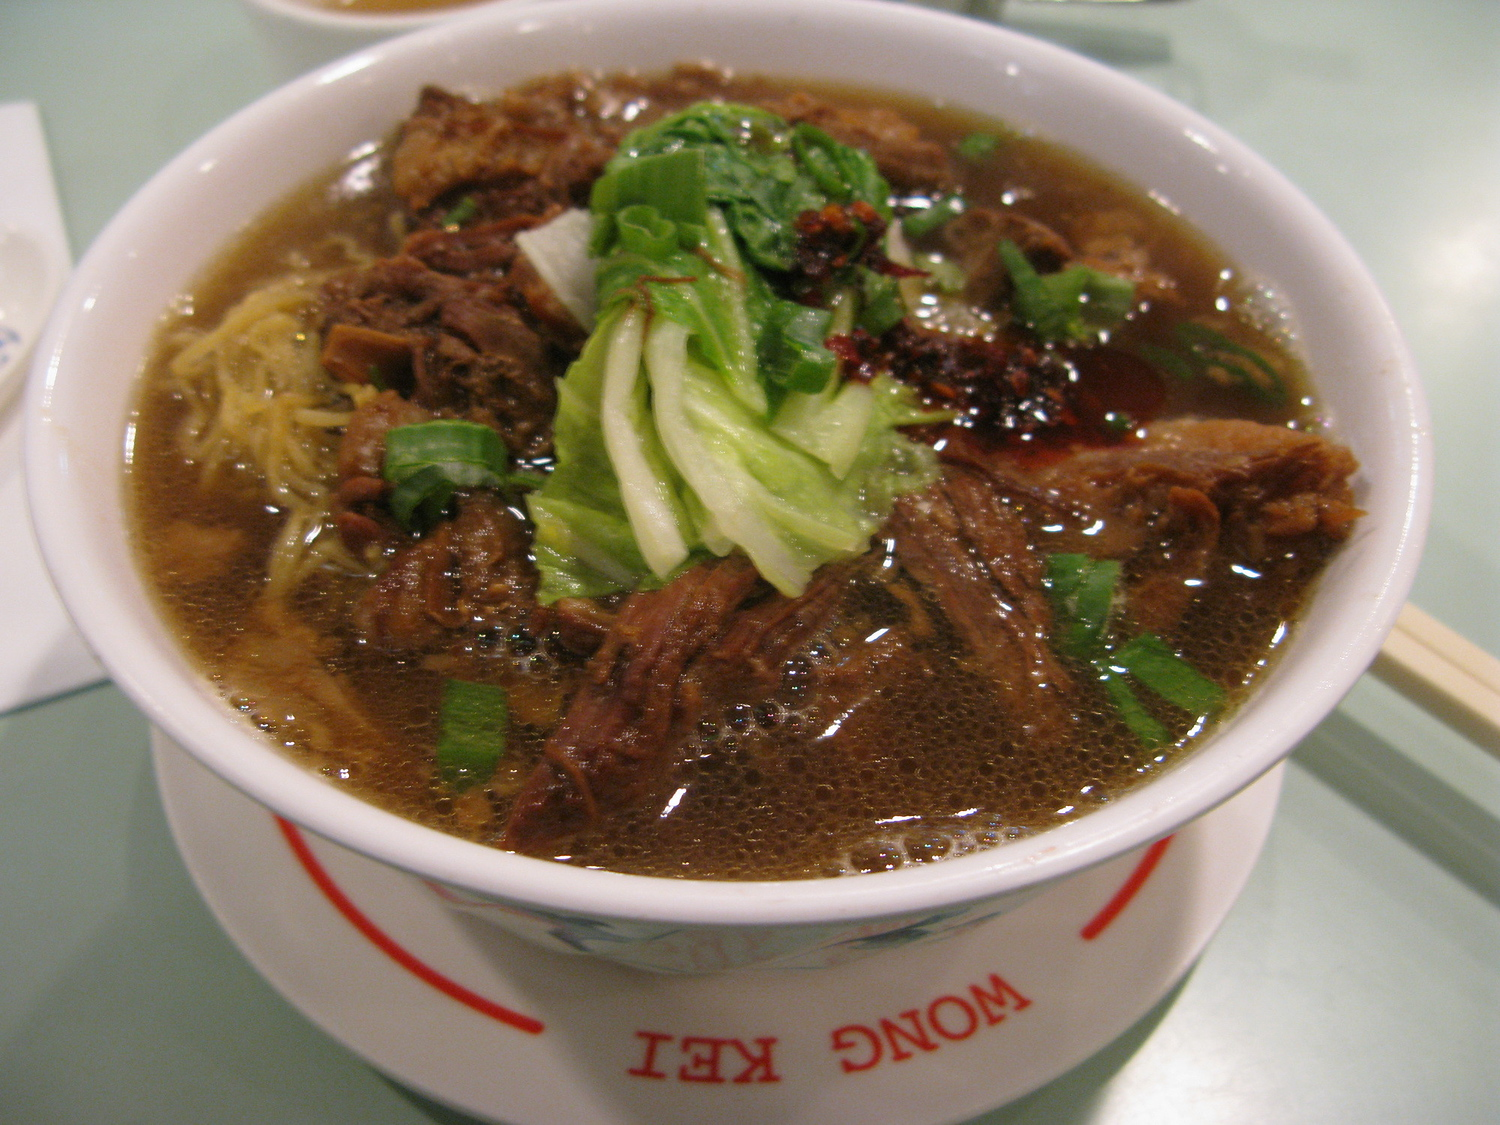 Brisket noodles is one of the most common Hong Kong foods.